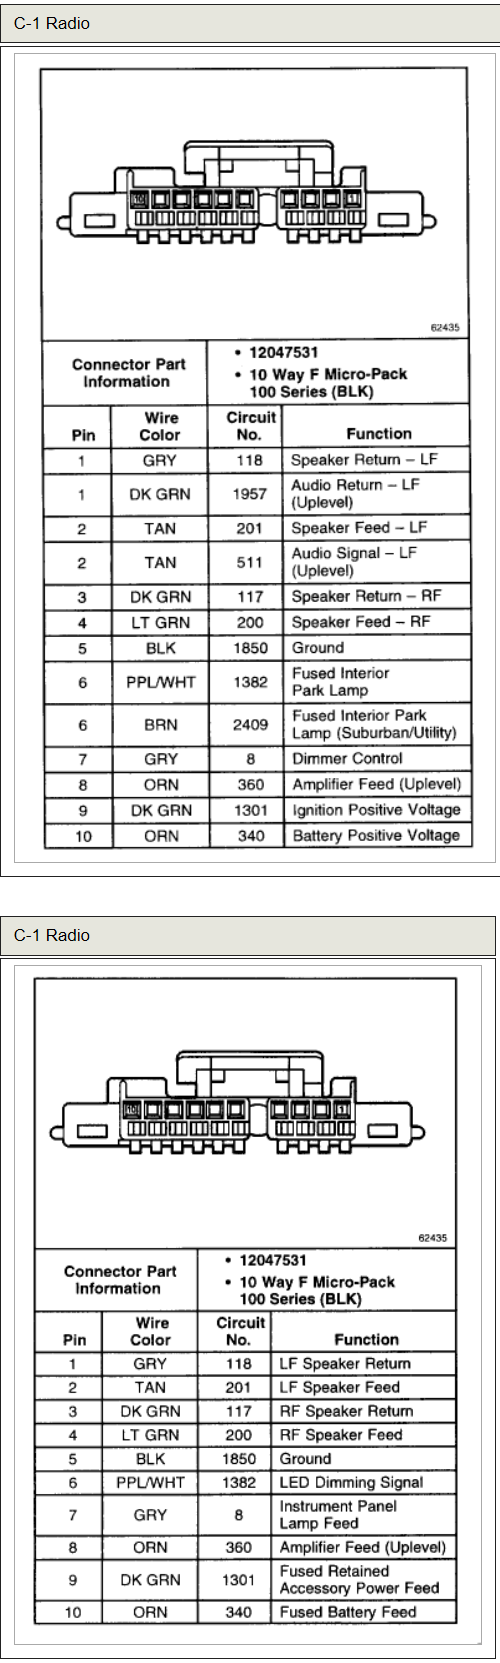 Chevrolet Tahoe LS 2000 stereo wiring connector 2 2003 chevy venture wiring diagram 1997 chevy blazer wiring diagram 2003 chevy cavalier stereo wiring diagram at gsmportal.co